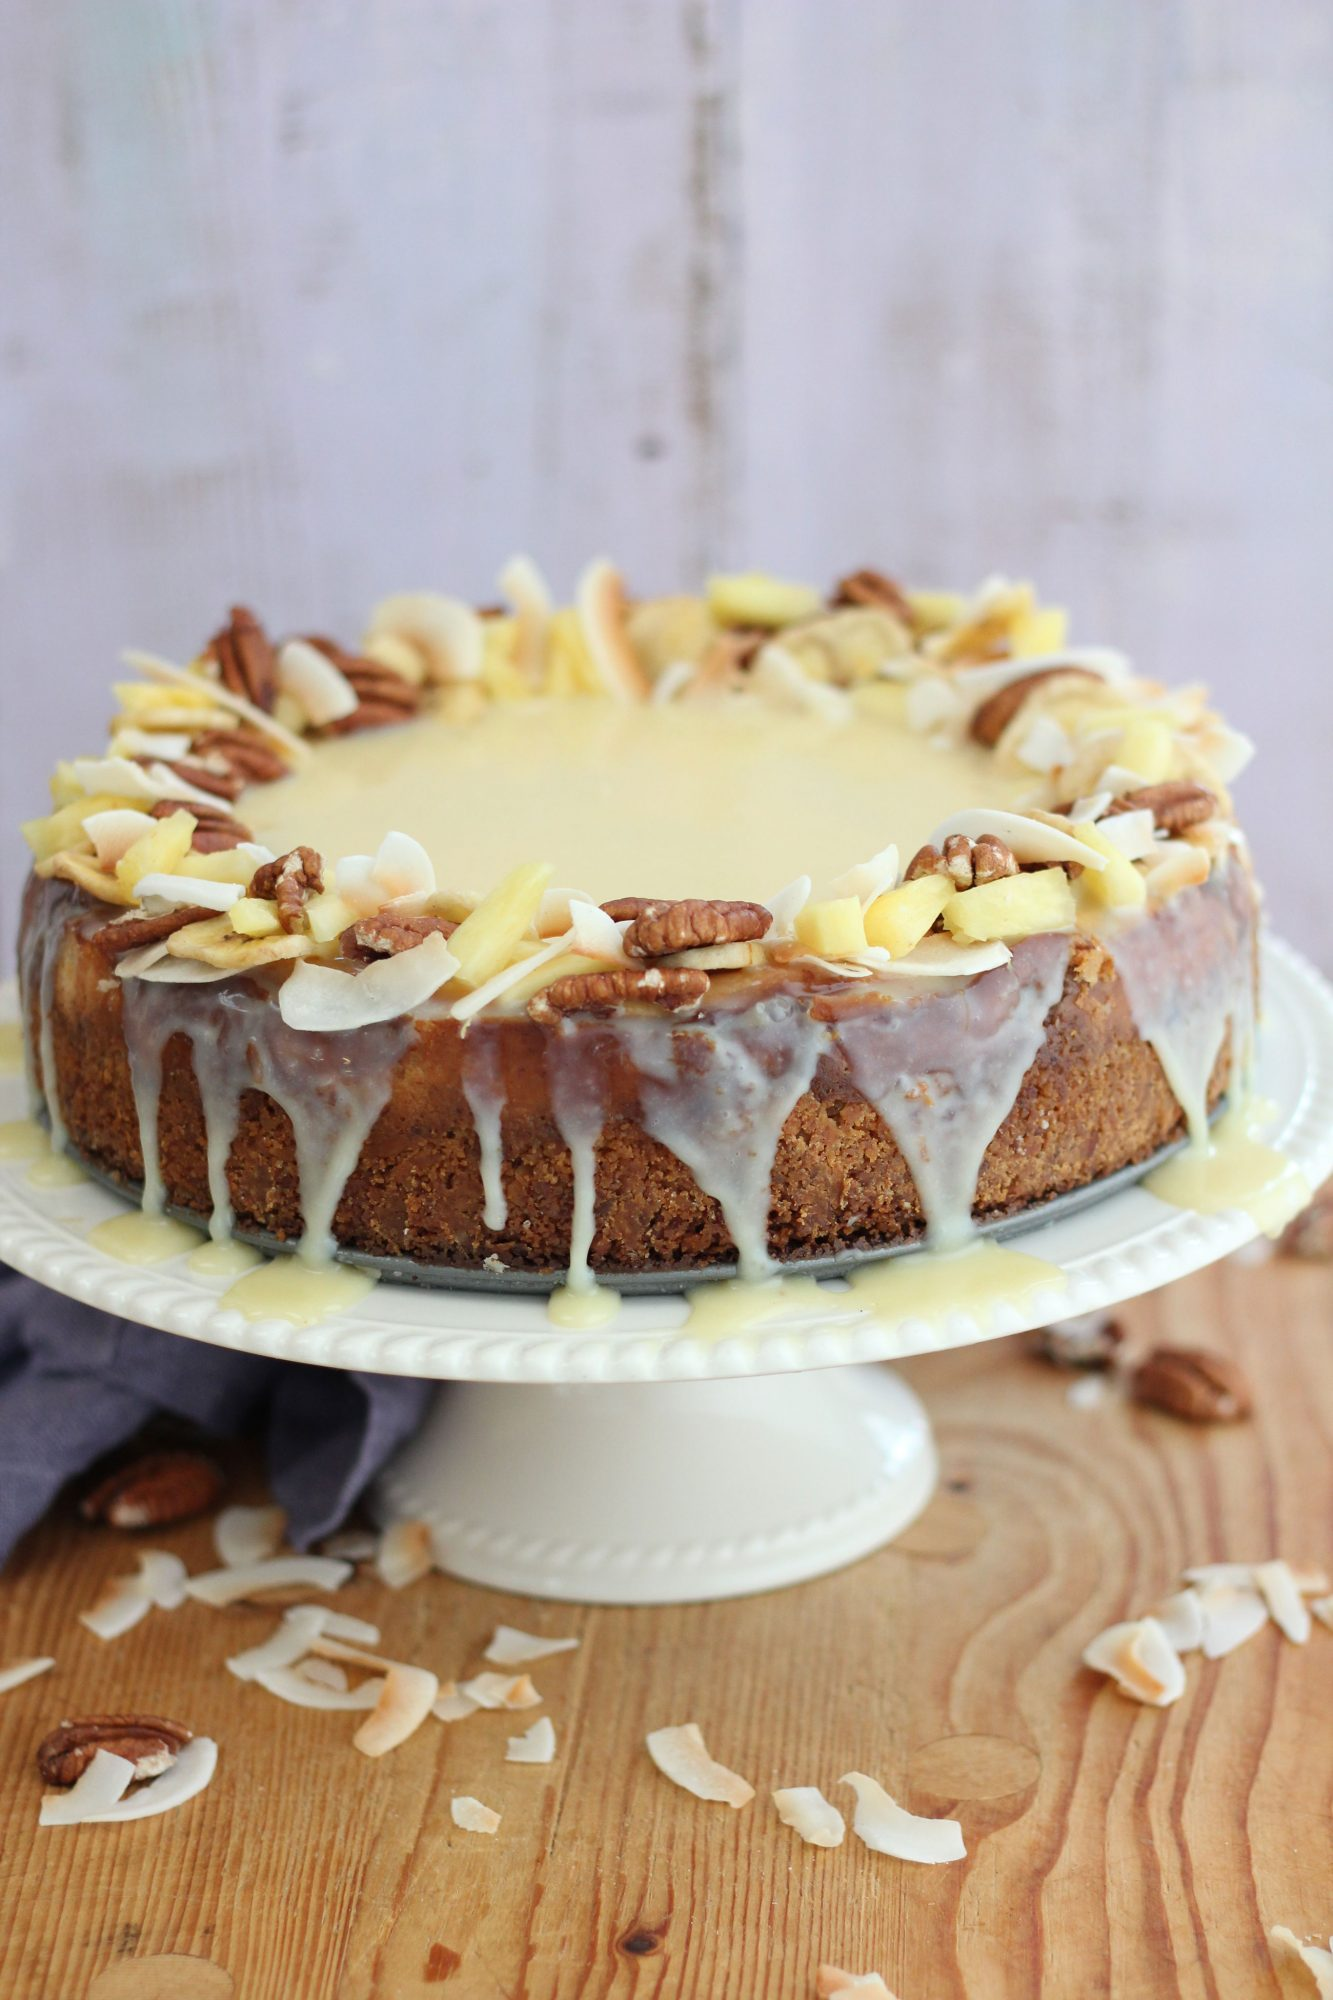 gluten free cheese cake recipe  »  9 Image »  Awesome ..!